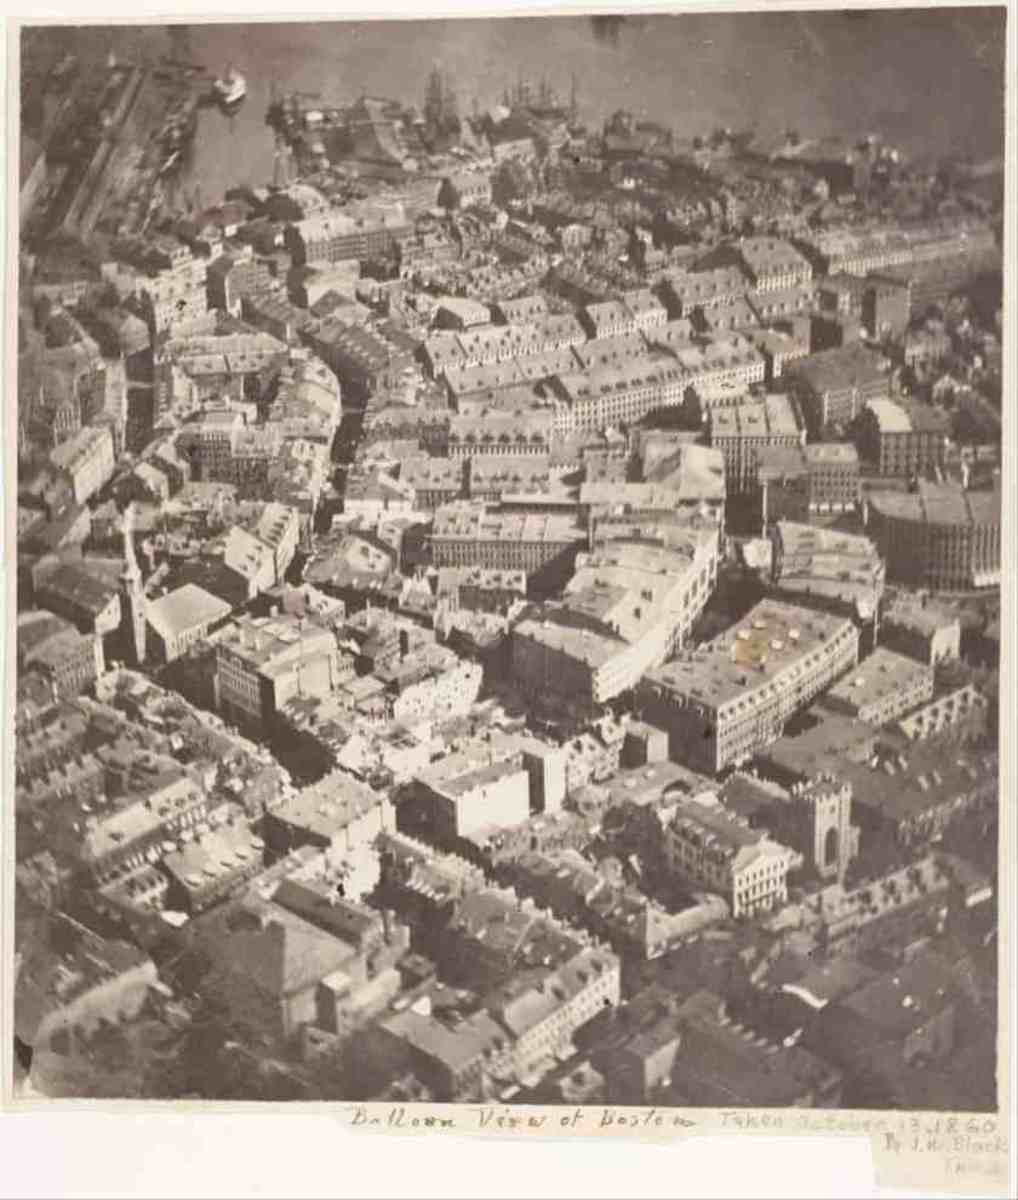 James Wallace Black's aerial photograph taken in 1860